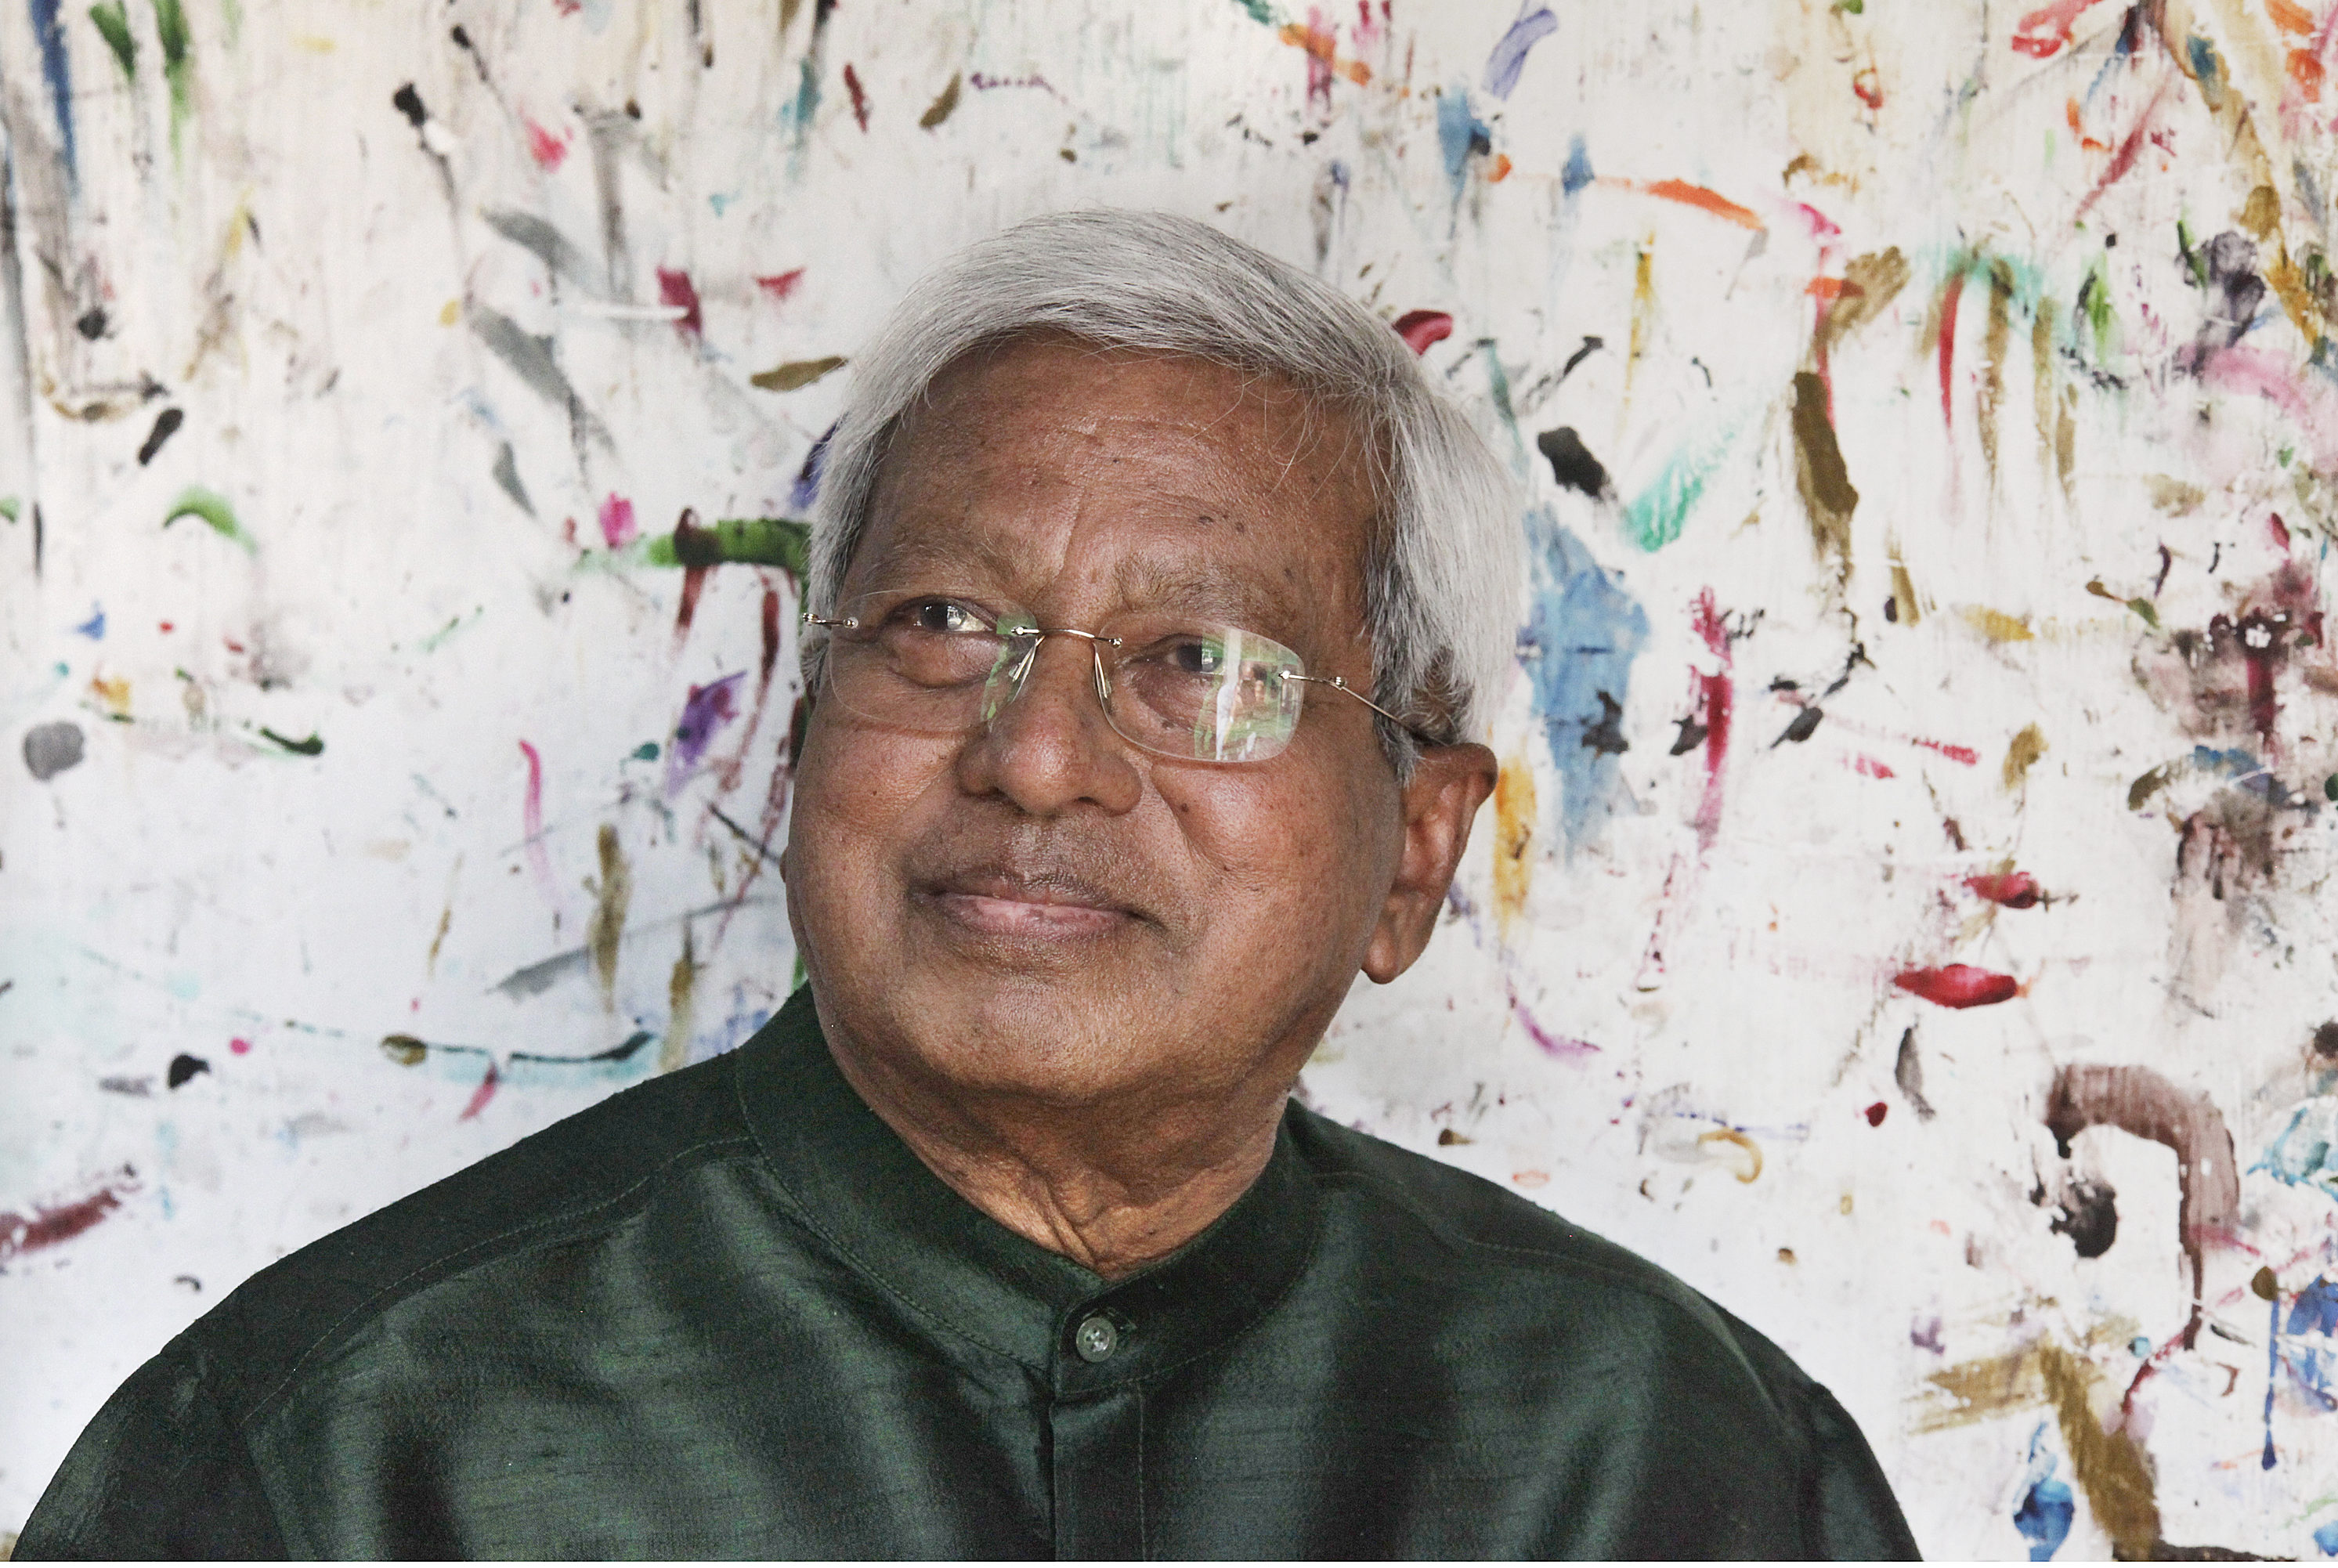 sir fazle hasan abed Sir fazle hasan abed of bangladesh, the internationally renowned founder and chairperson of brac, will be honored as the 2015 world food prize laureate for his unparalleled achievement in building a unique, integrated development organization that many have hailed as the most effective anti-poverty.